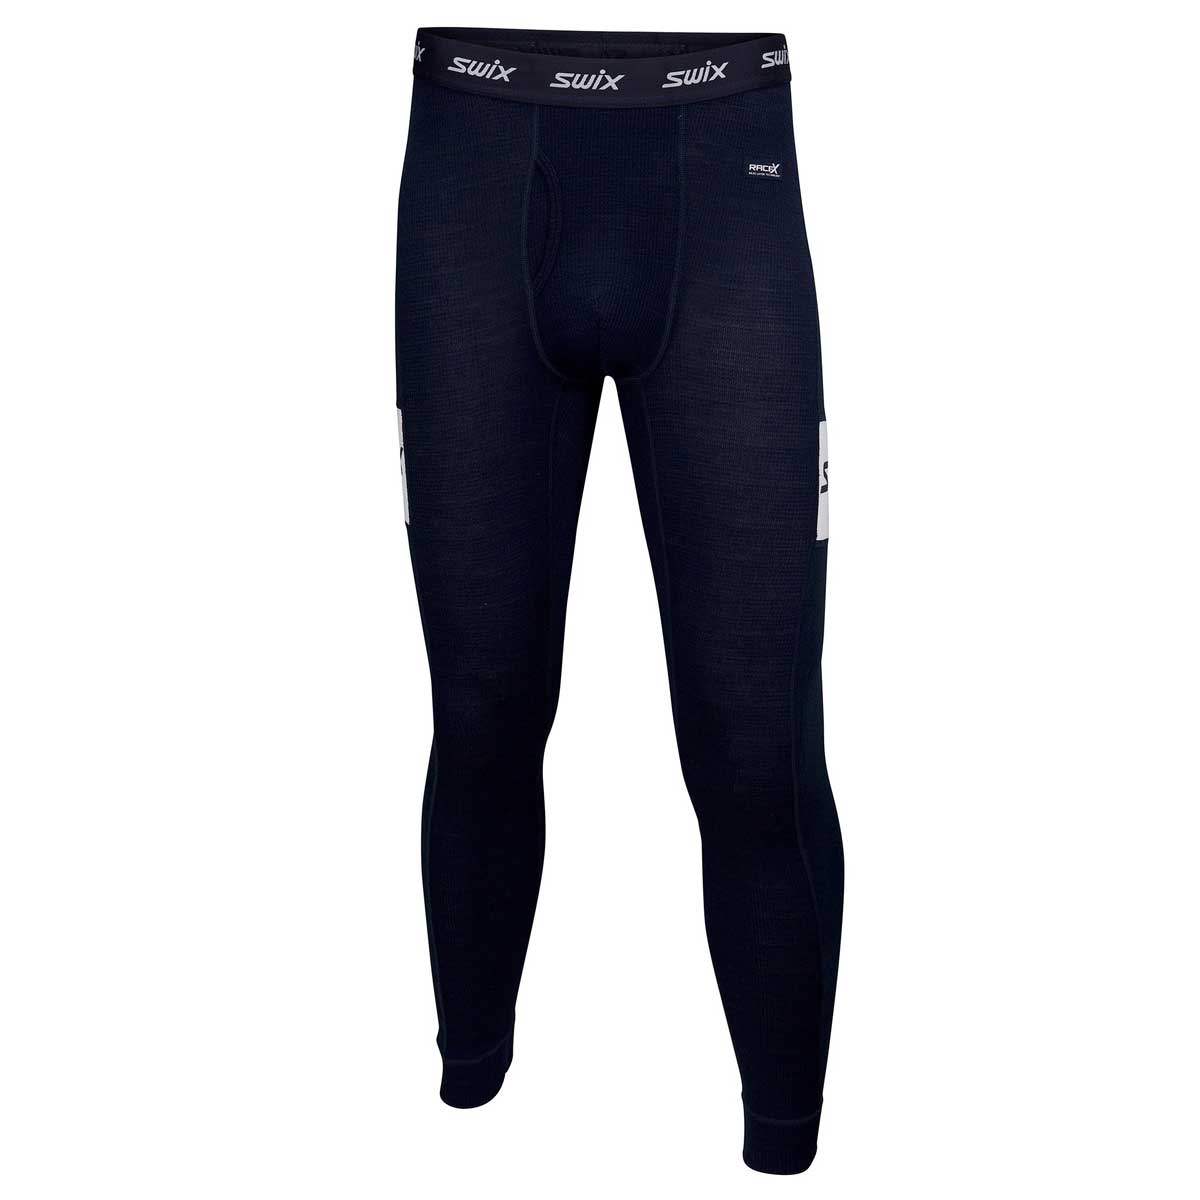 Swix Men's RaceX Warm Pant in Dark Navy